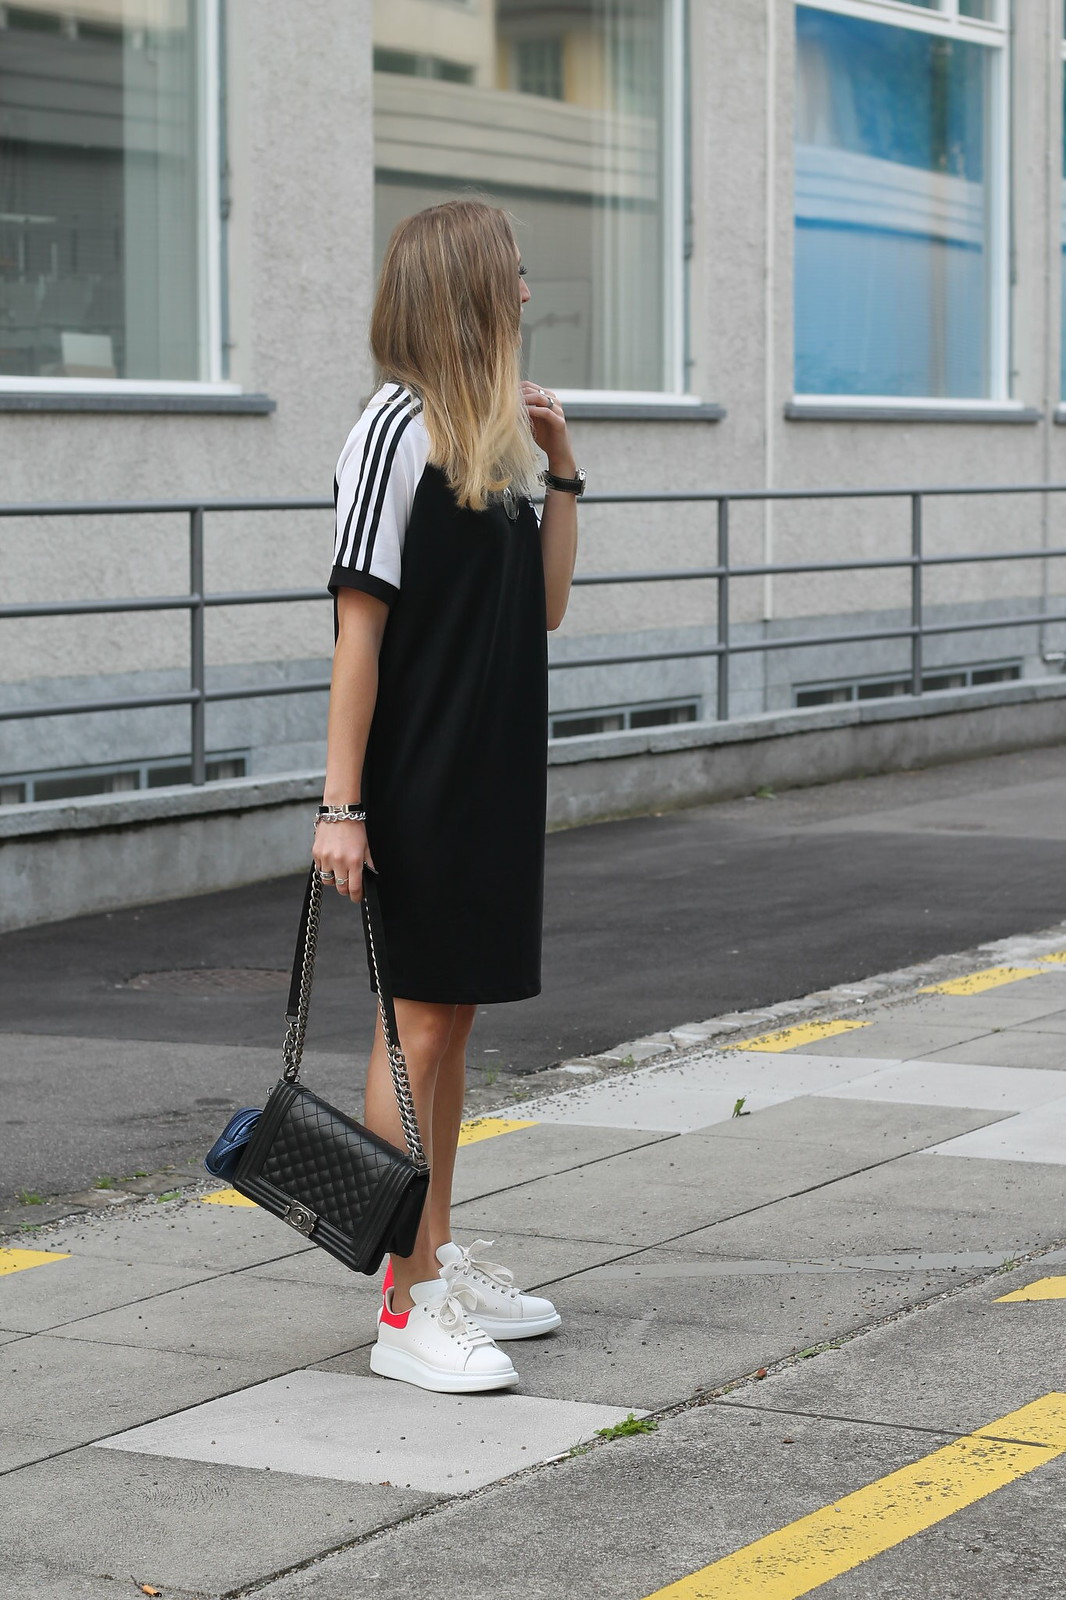 adidas-dress-and-alexander-mc-queen-sneaker-whole-look-side-wiebkembg